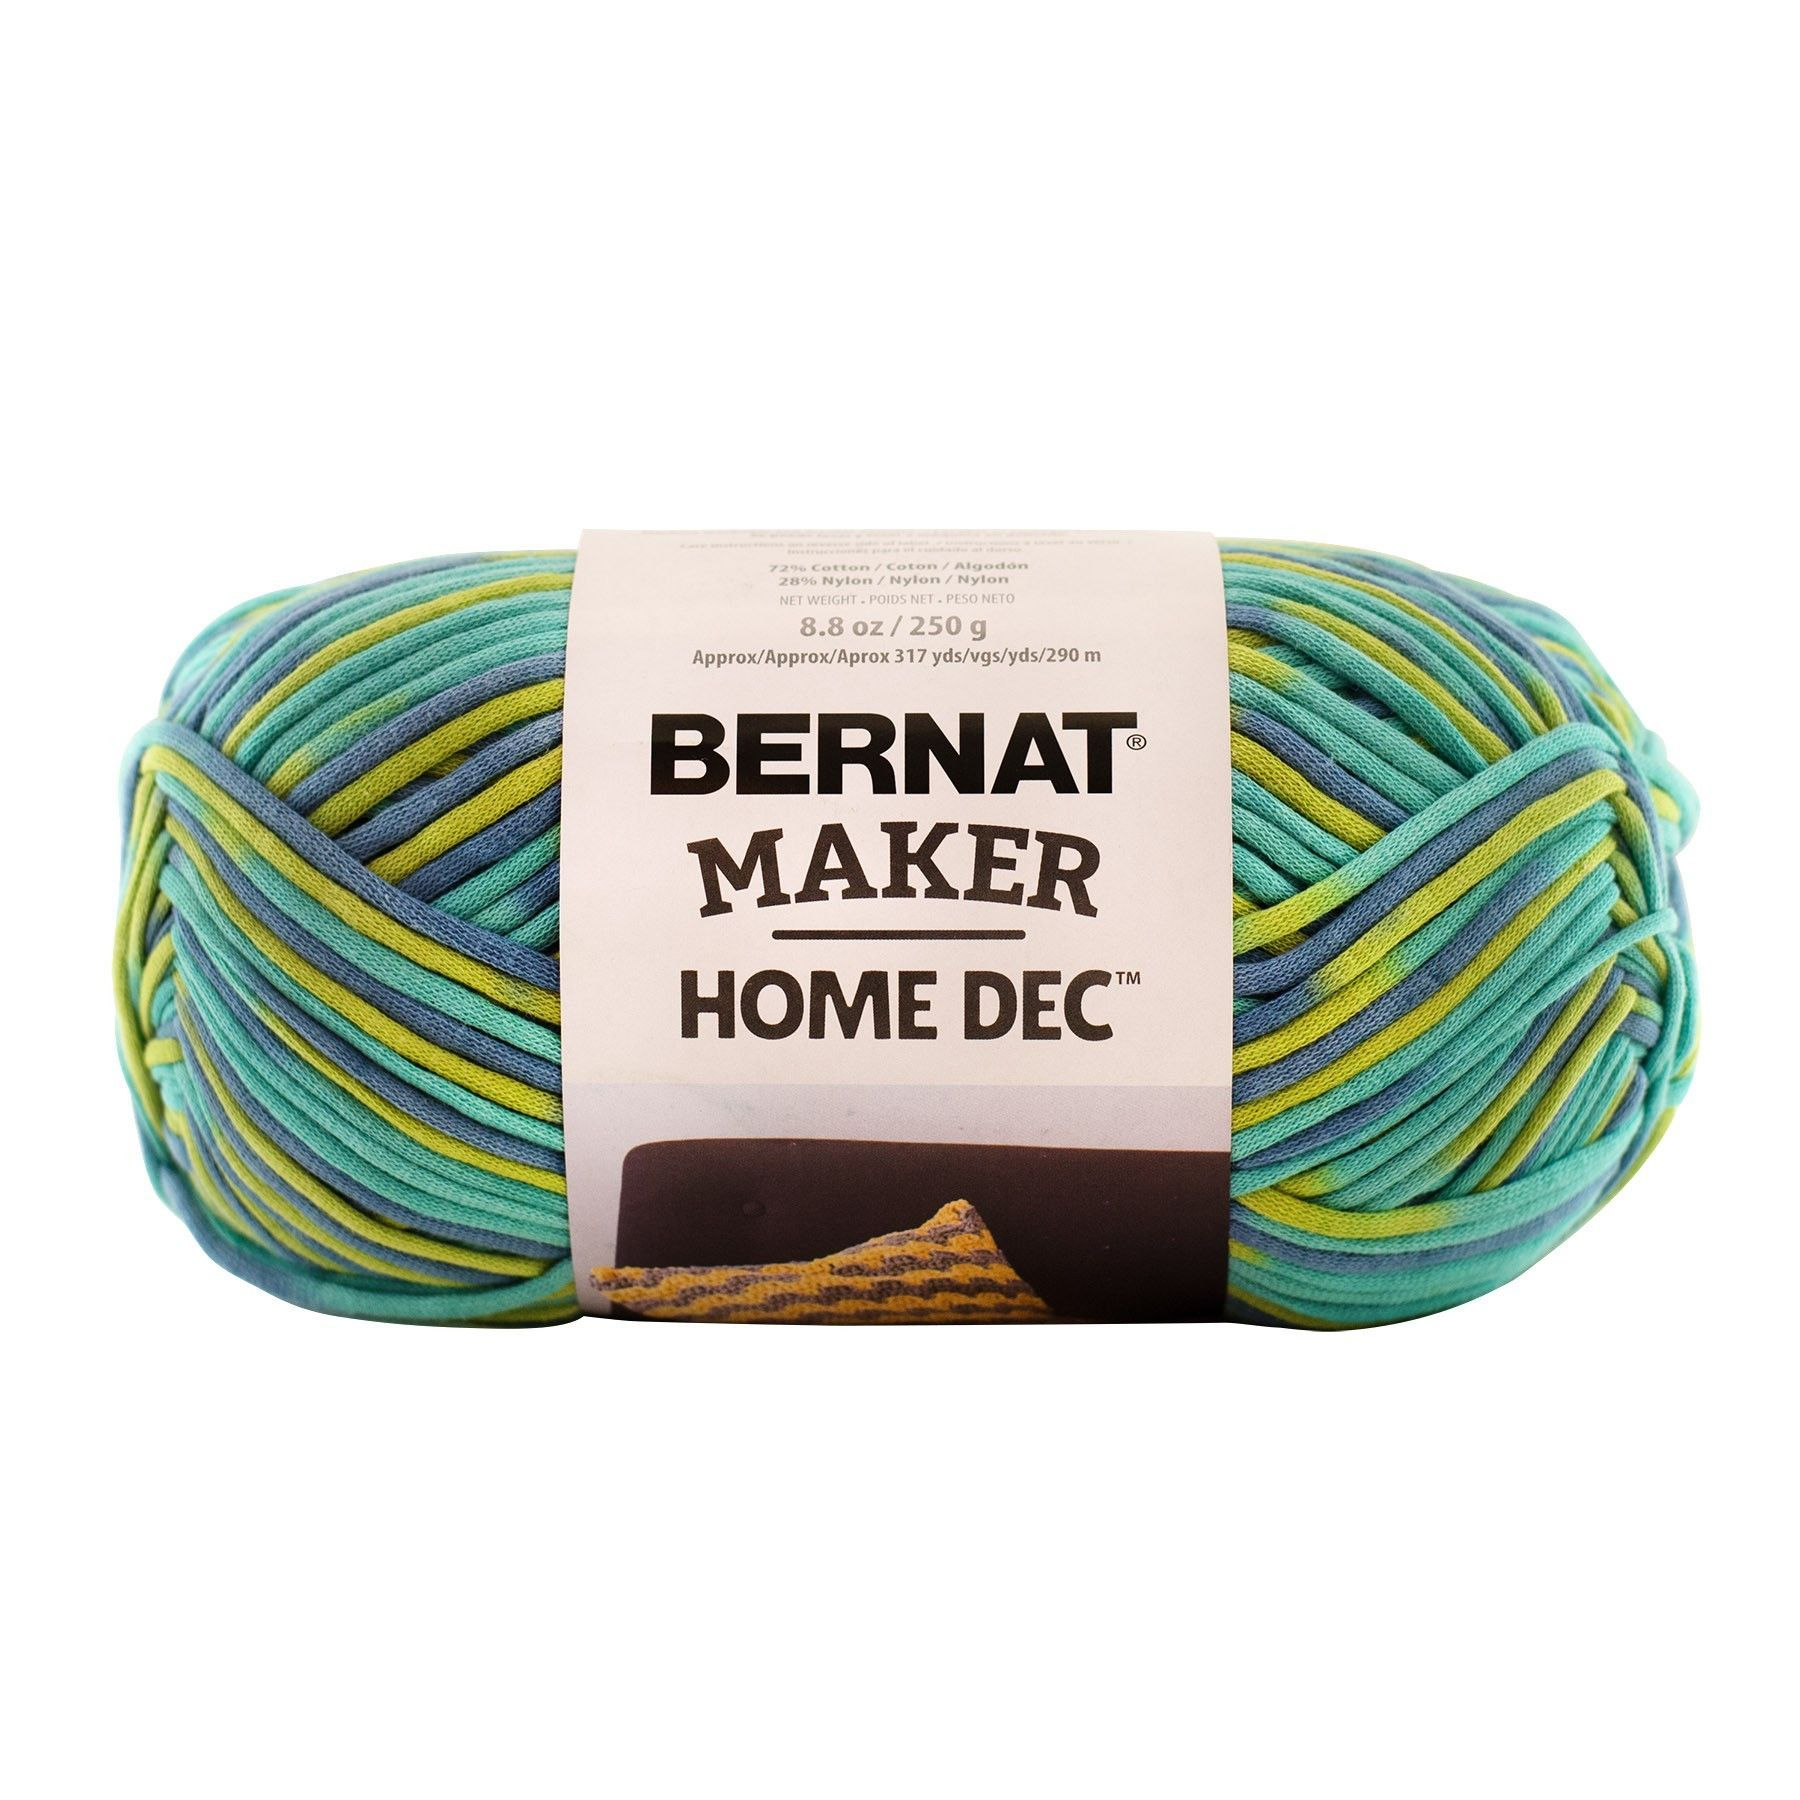 Bernat Maker Home Dec Yarn in Pacifica Variegate | Products by Kay\'s ...